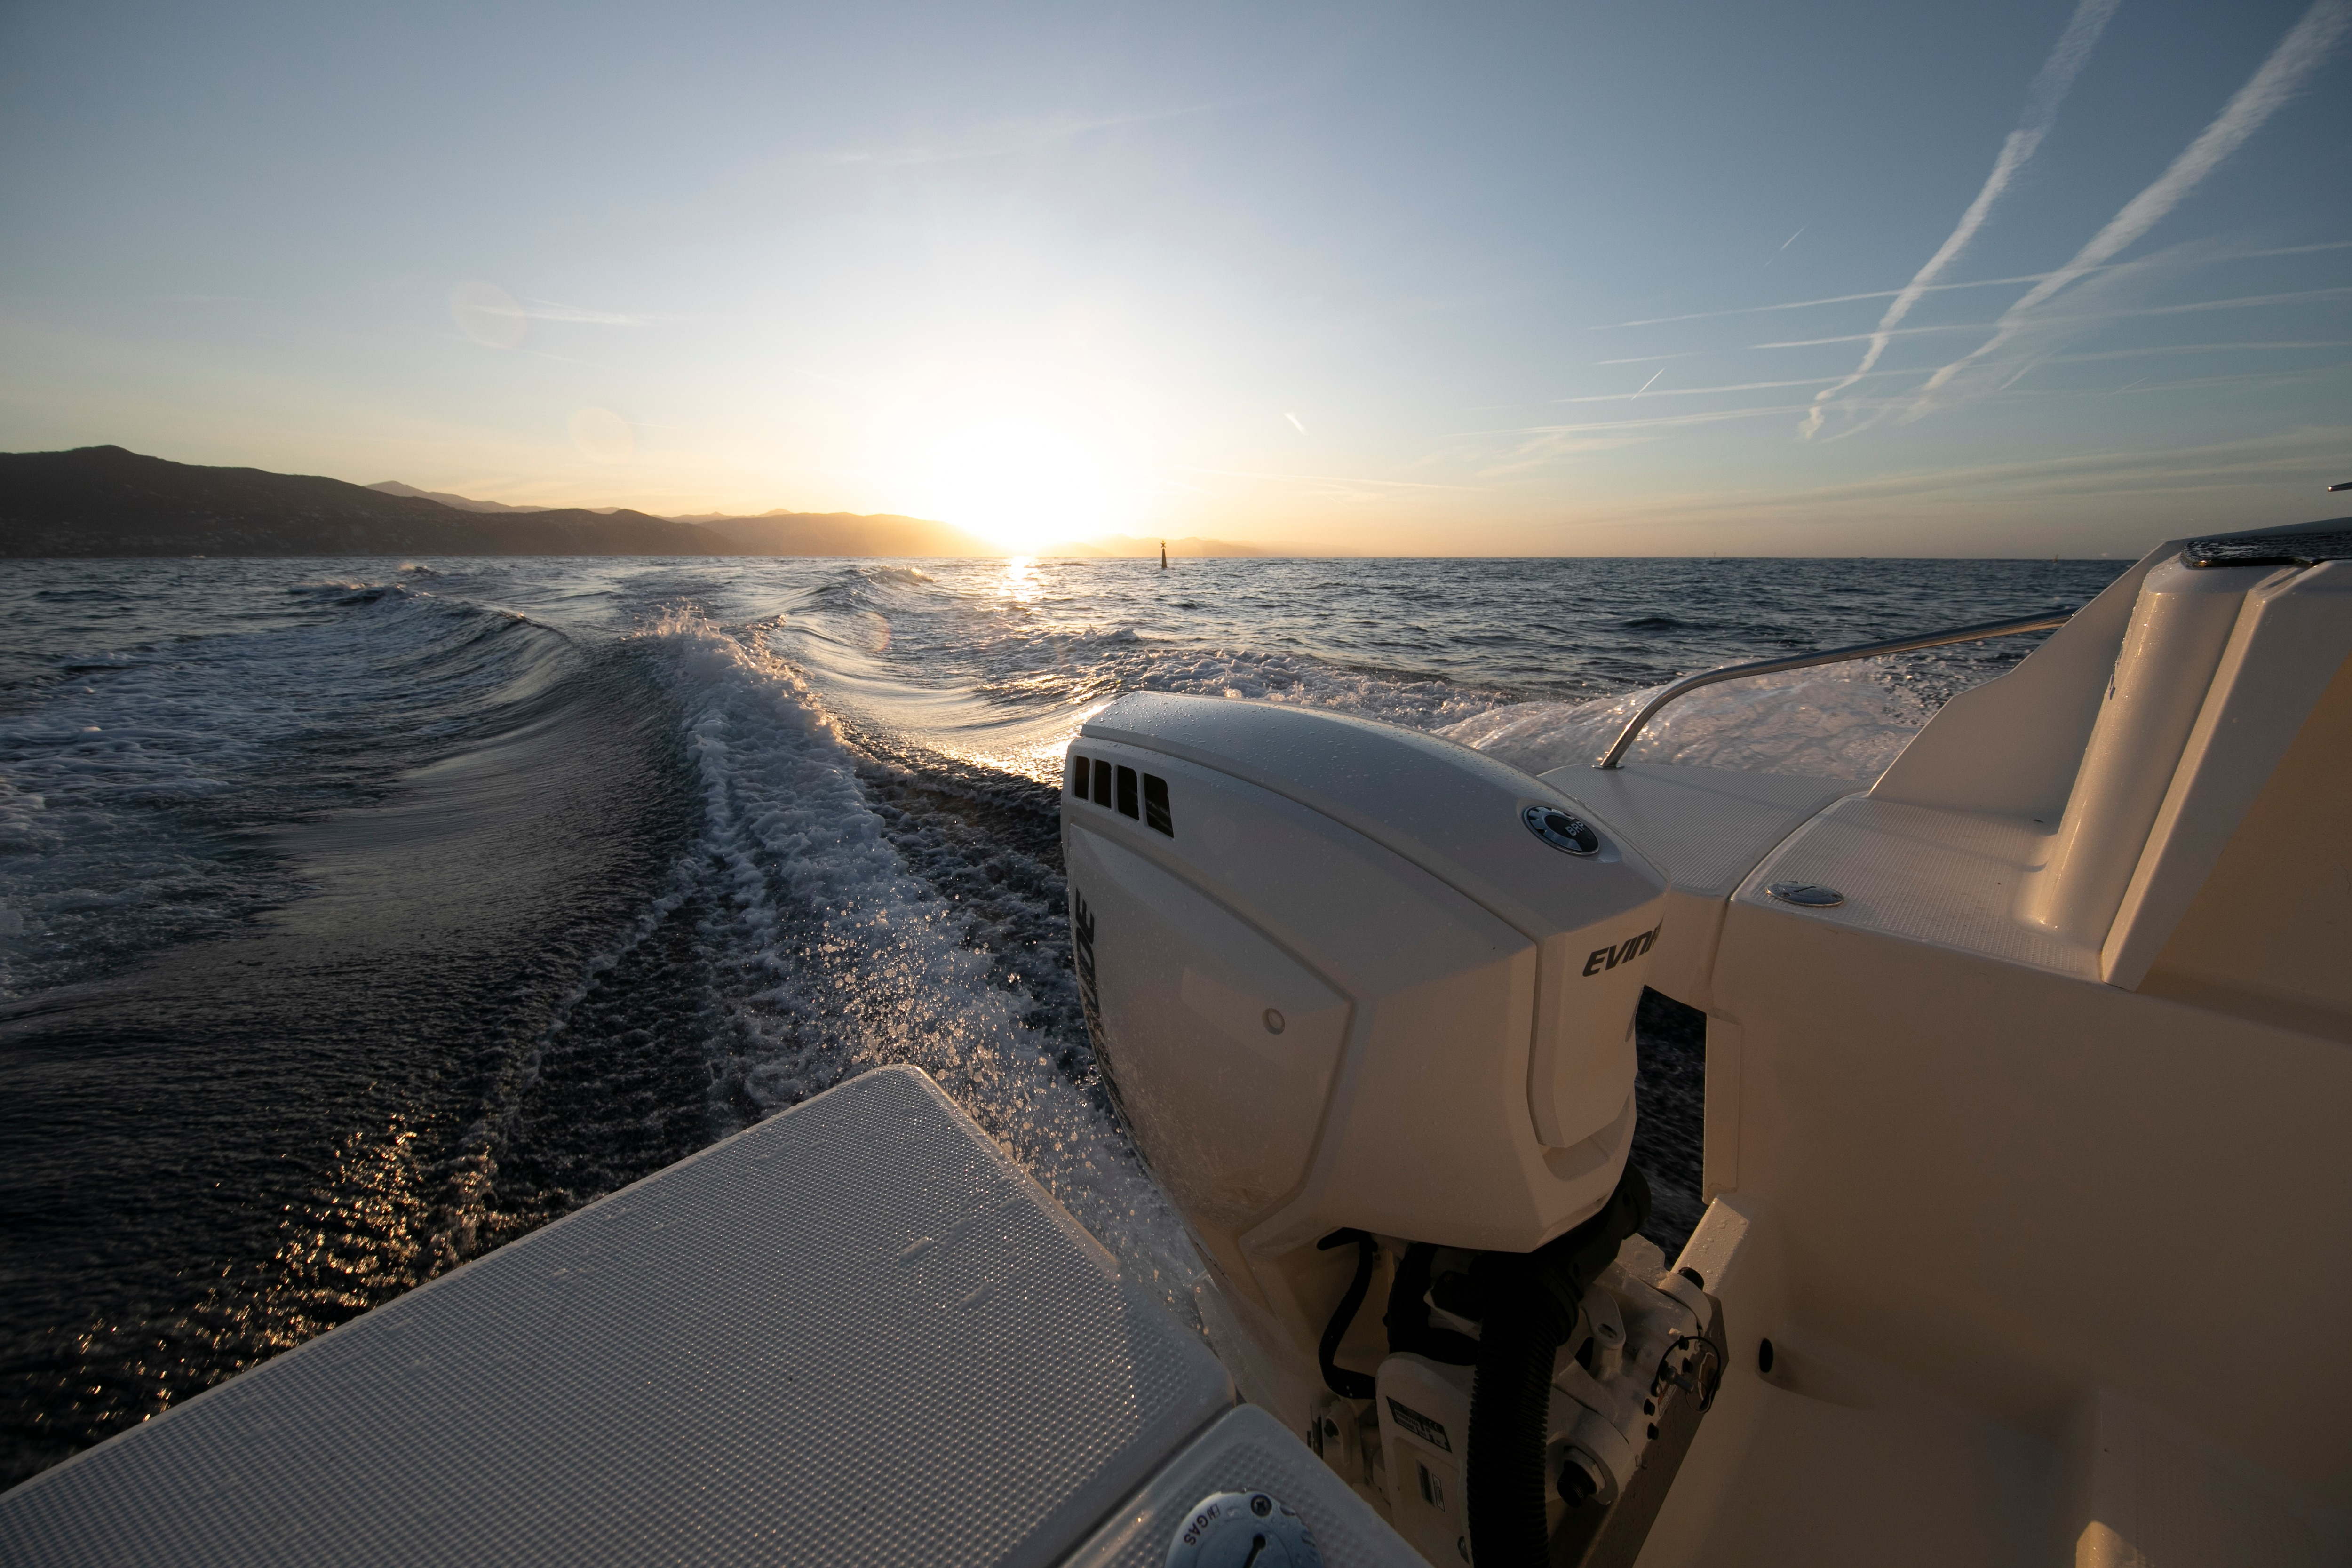 Evinrude motor with a sunset in the background